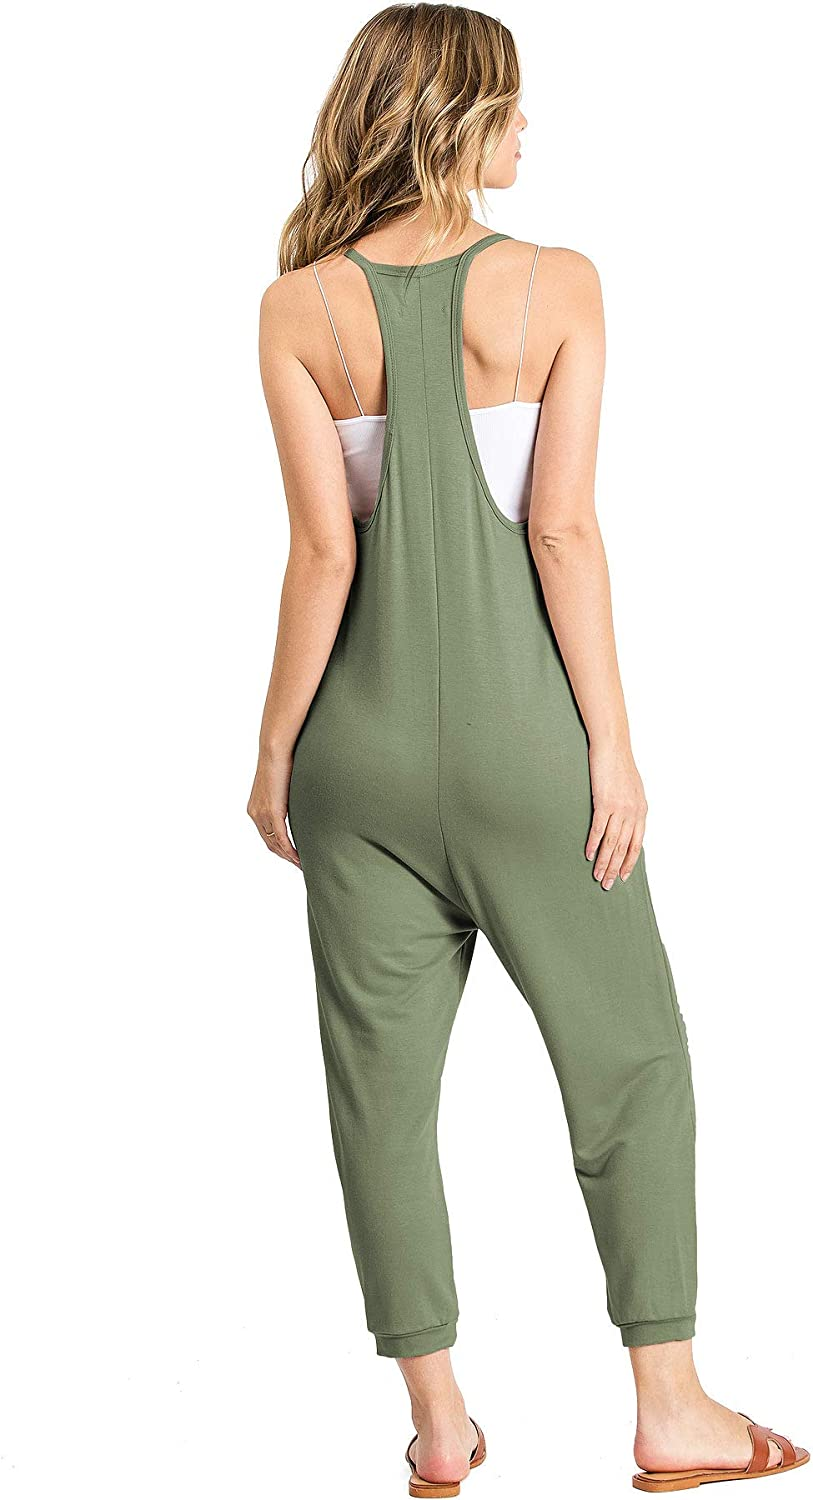 Wasabi /& Mint Womens Terry Cloth Cropped Leg Jumpsuit